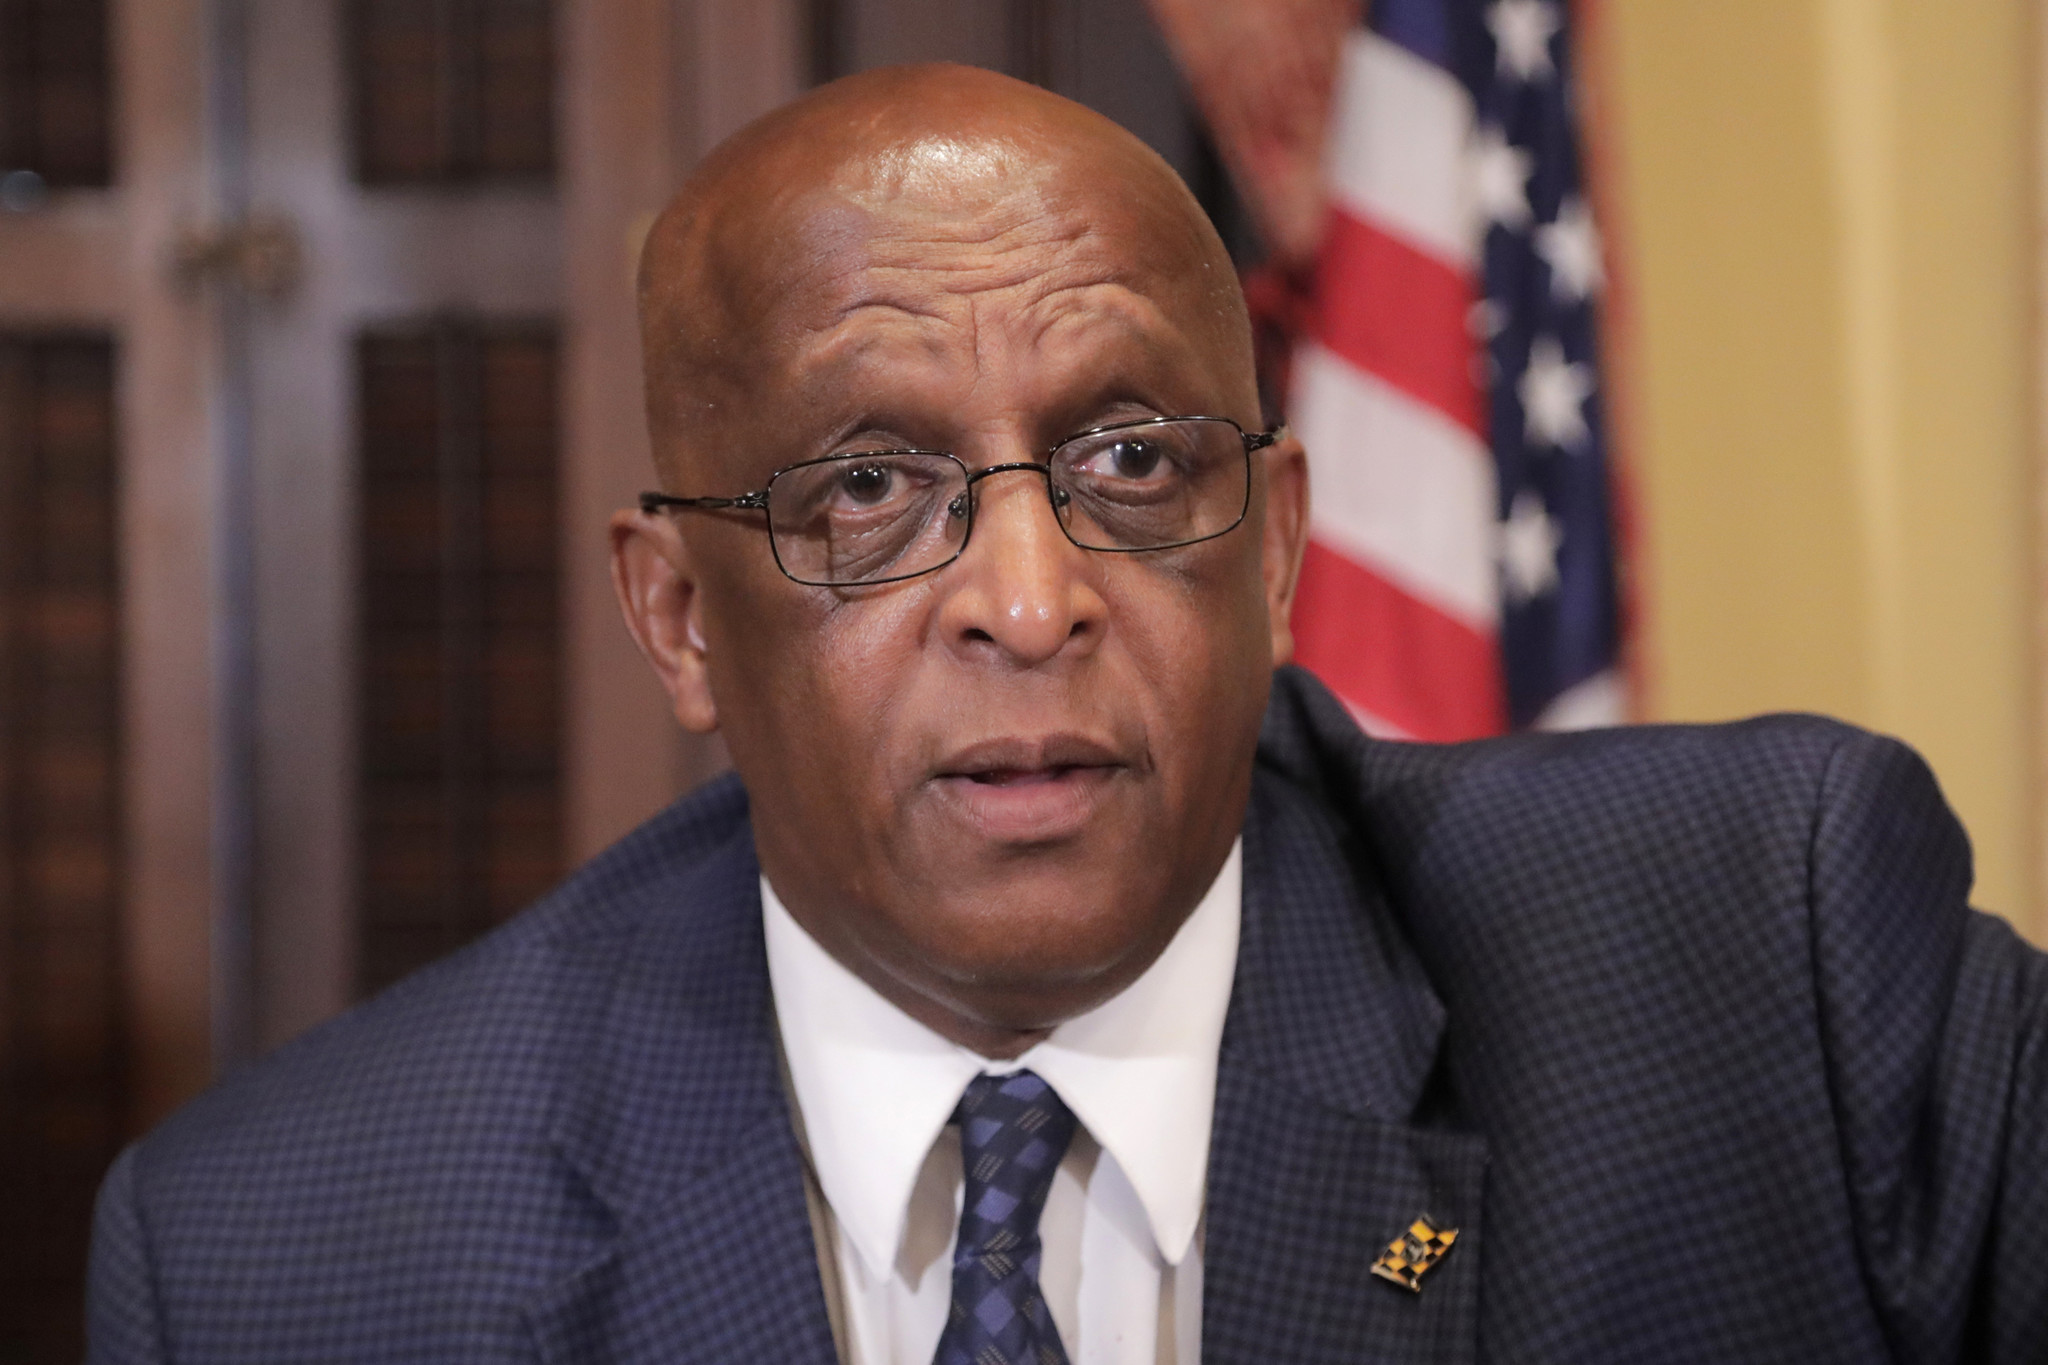 Mayor of Baltimore begs for end to gun violence so hospitals can focus on coronavirus